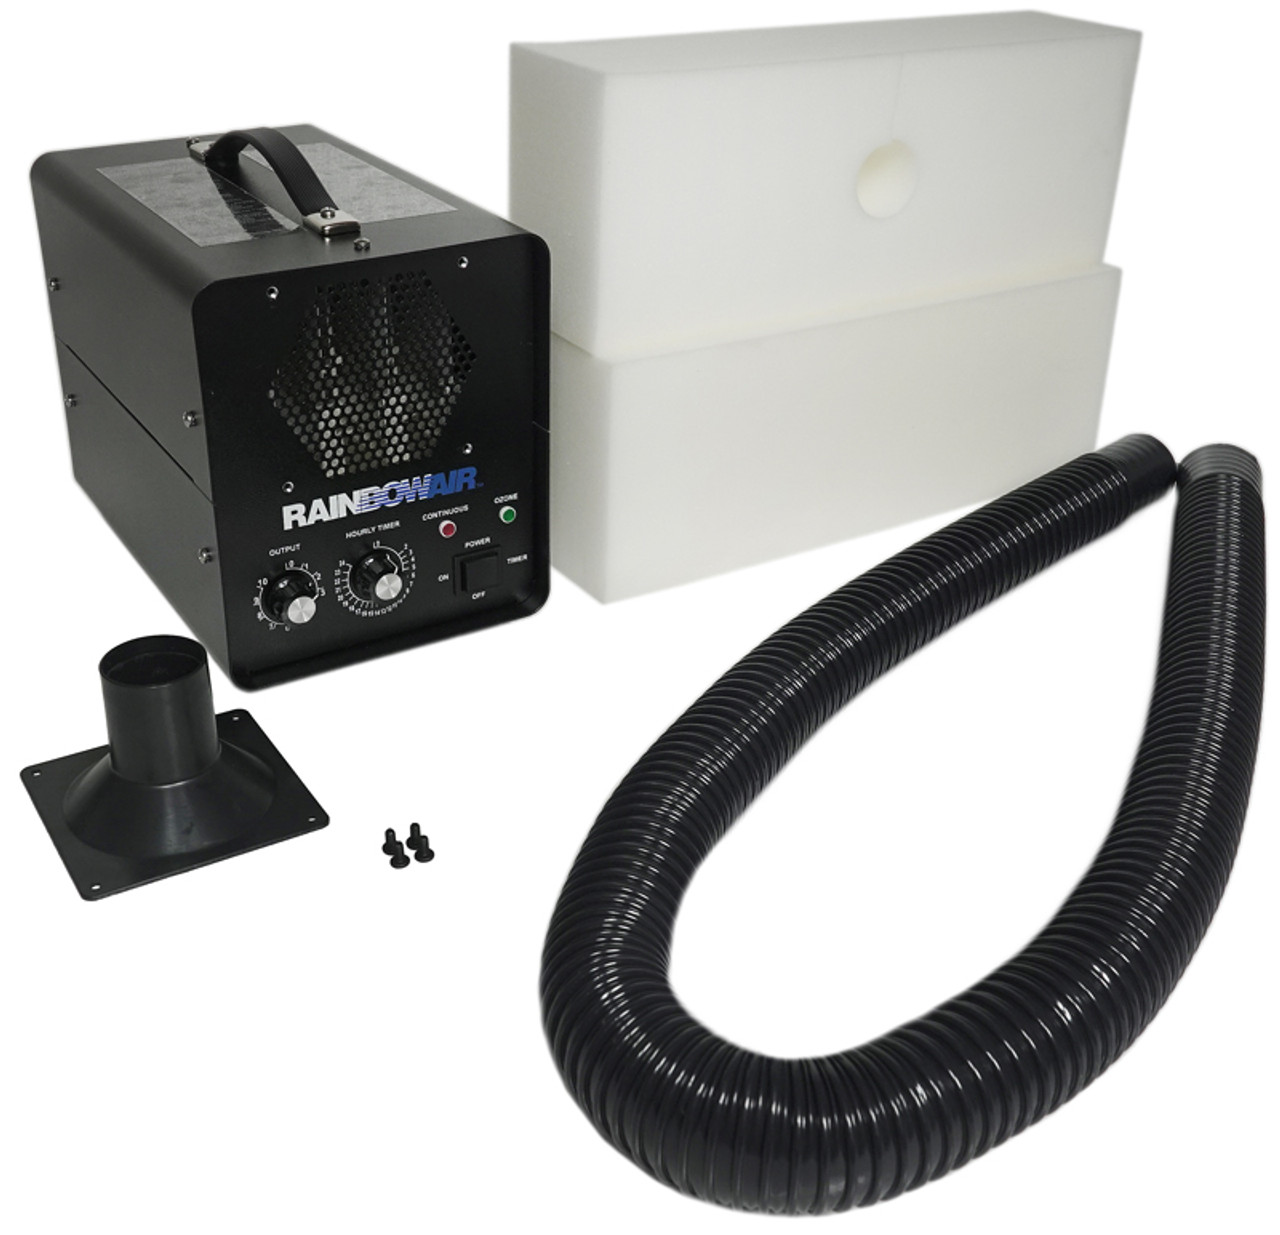 Rainbowair Activator Ozone Generator 1000 Series II with Auto Kit